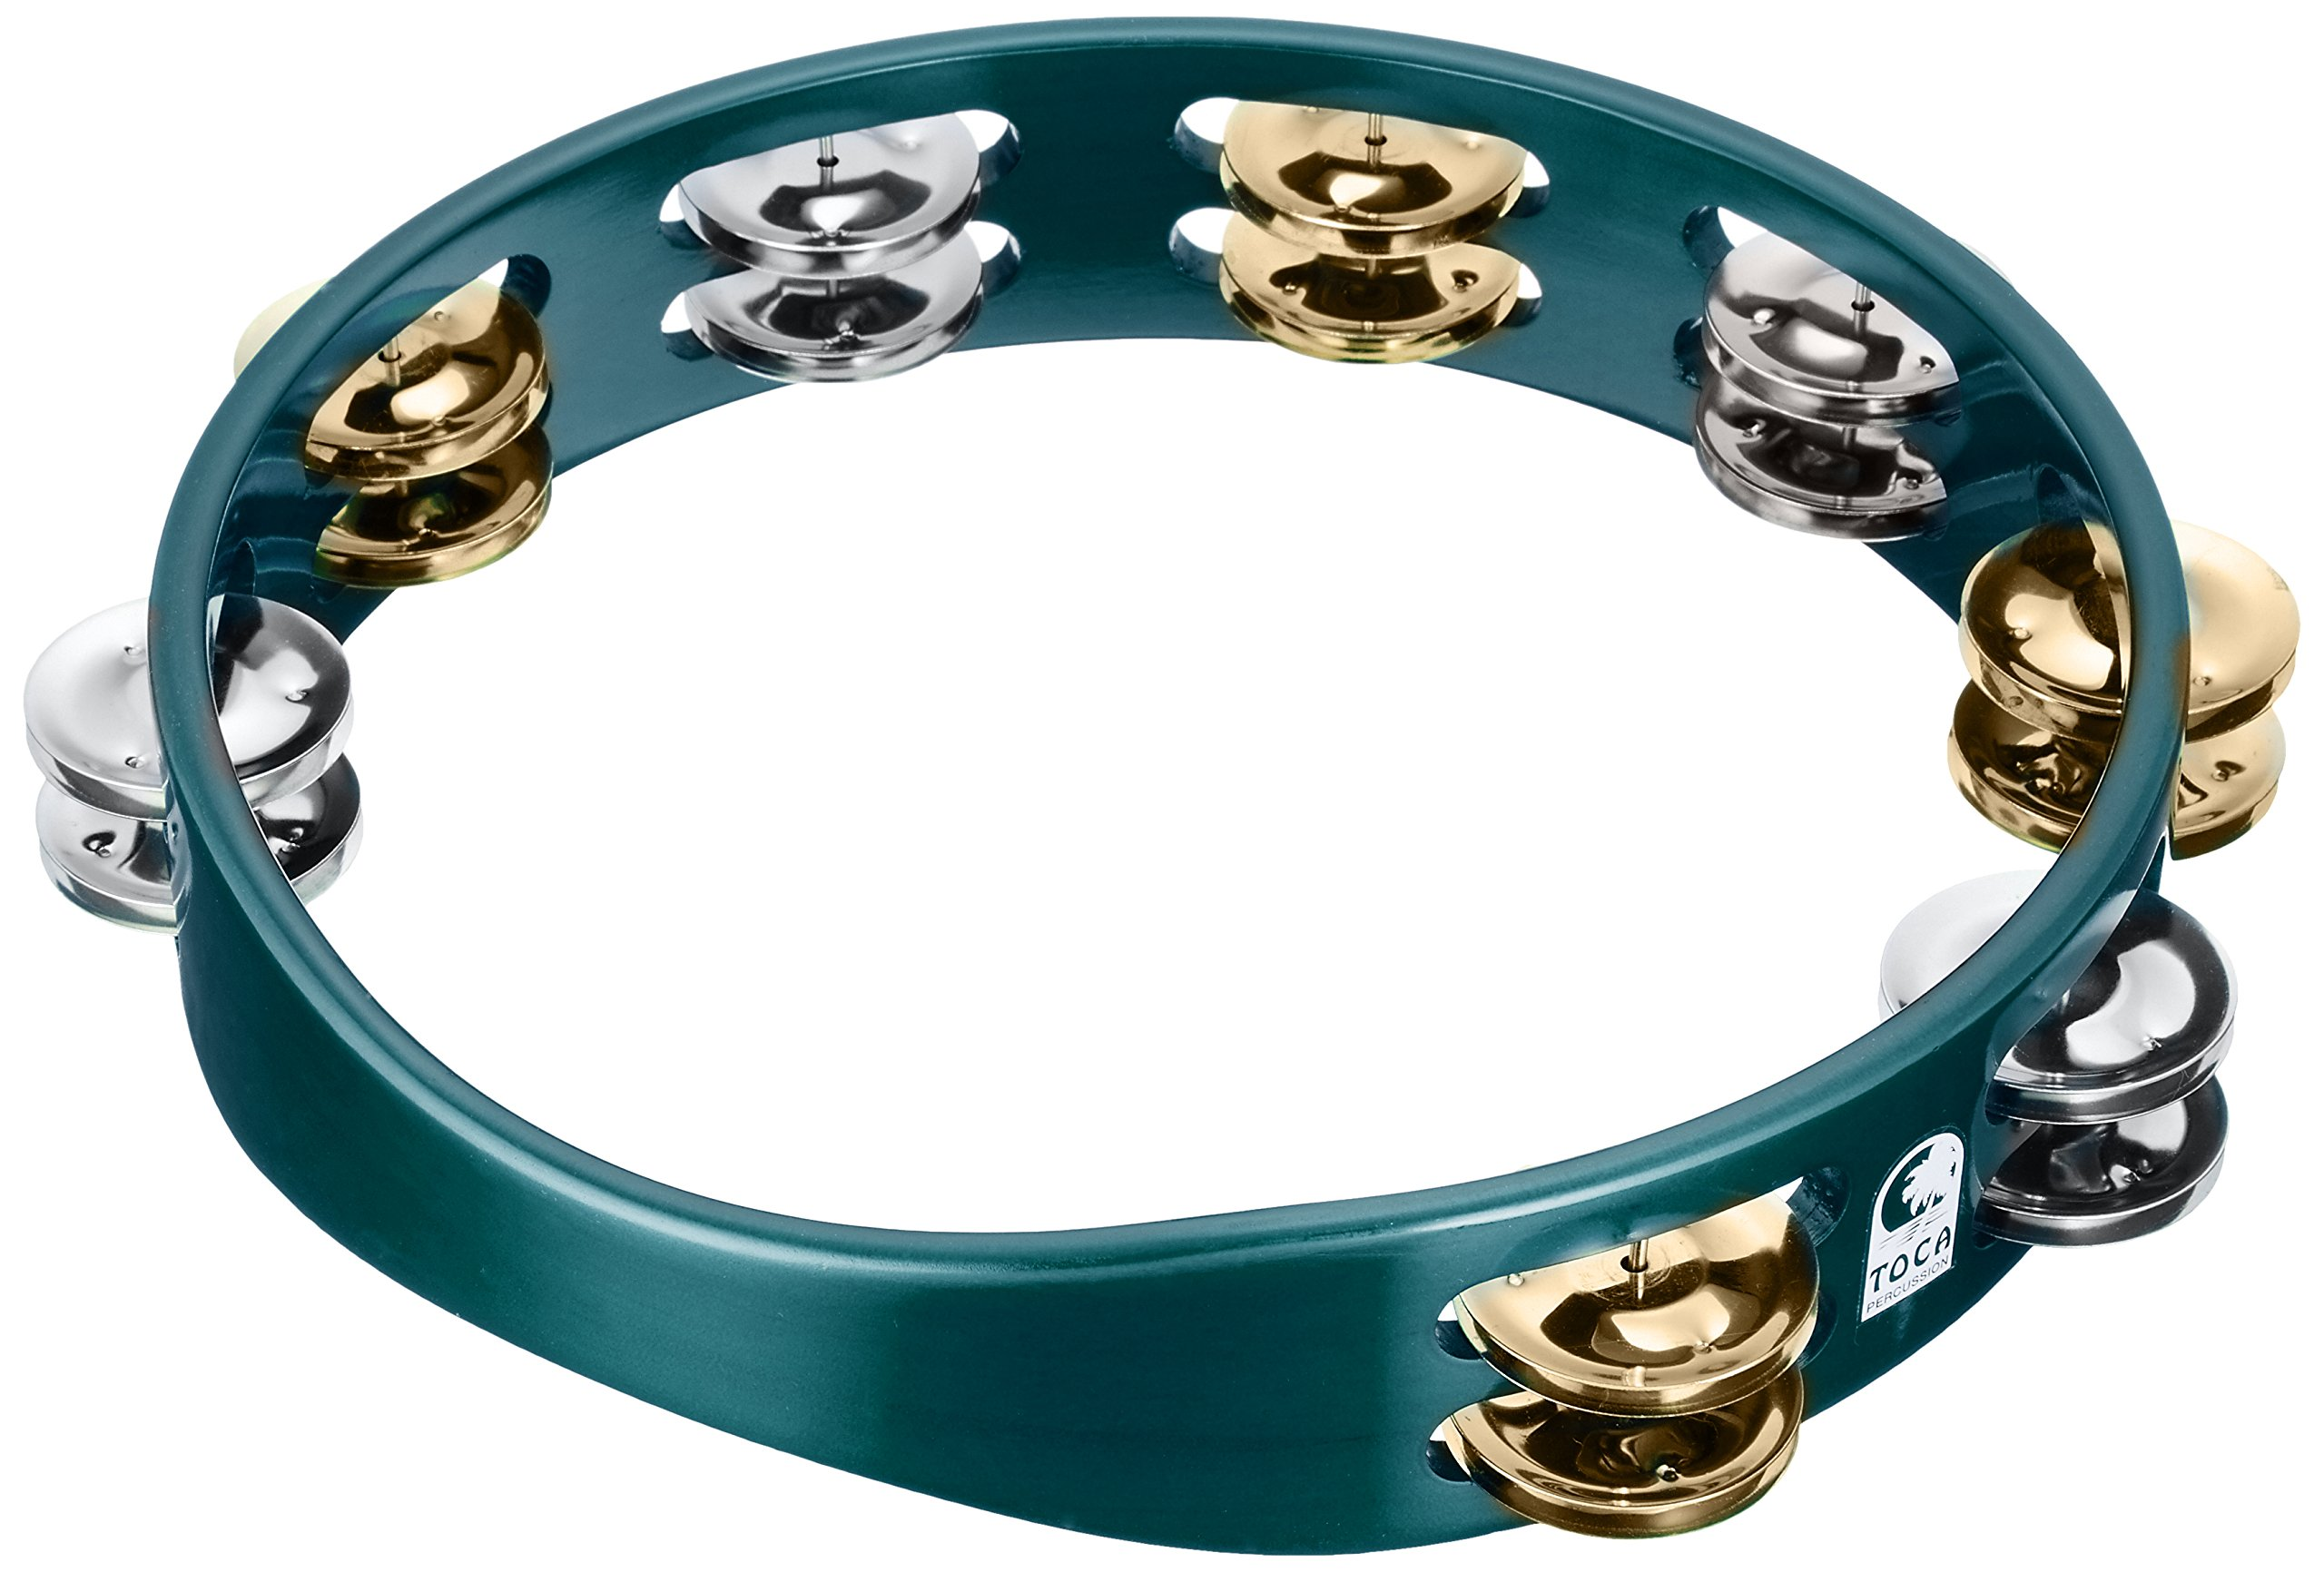 Toca TCT10-GN ColorSound Tambourine - Green by Toca